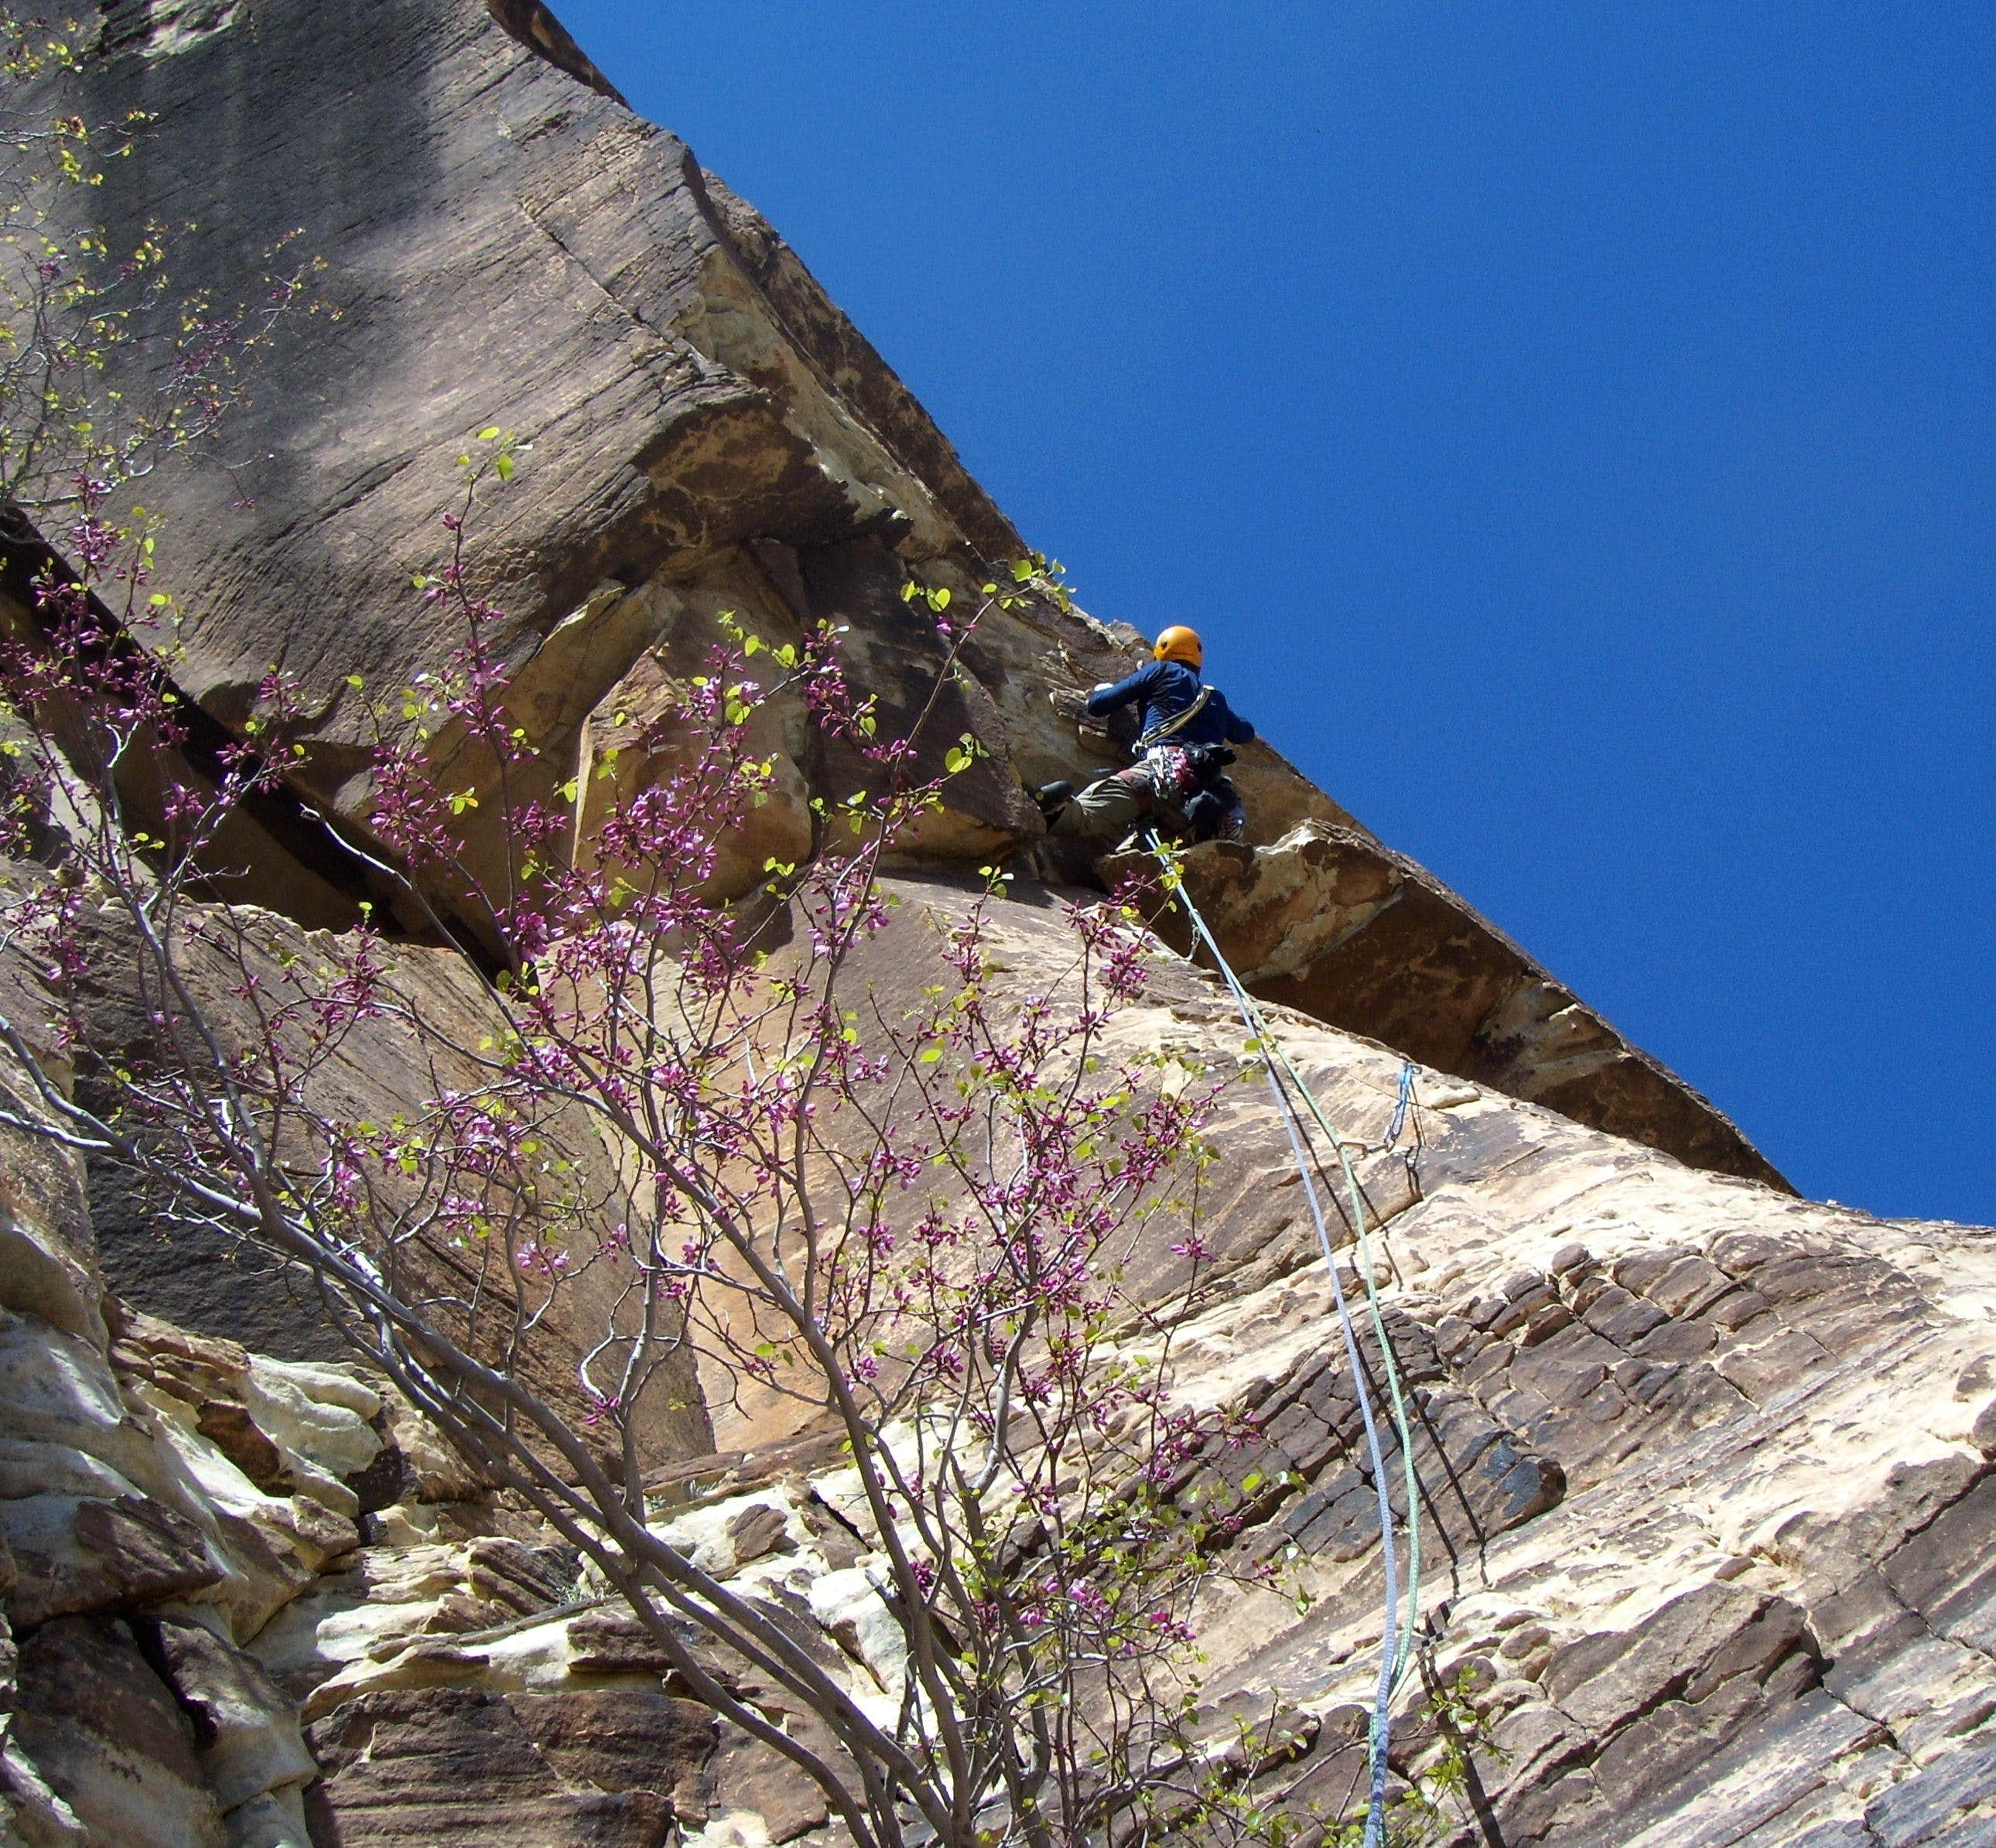 Sour Mash, 5.10a, 6 Pitches